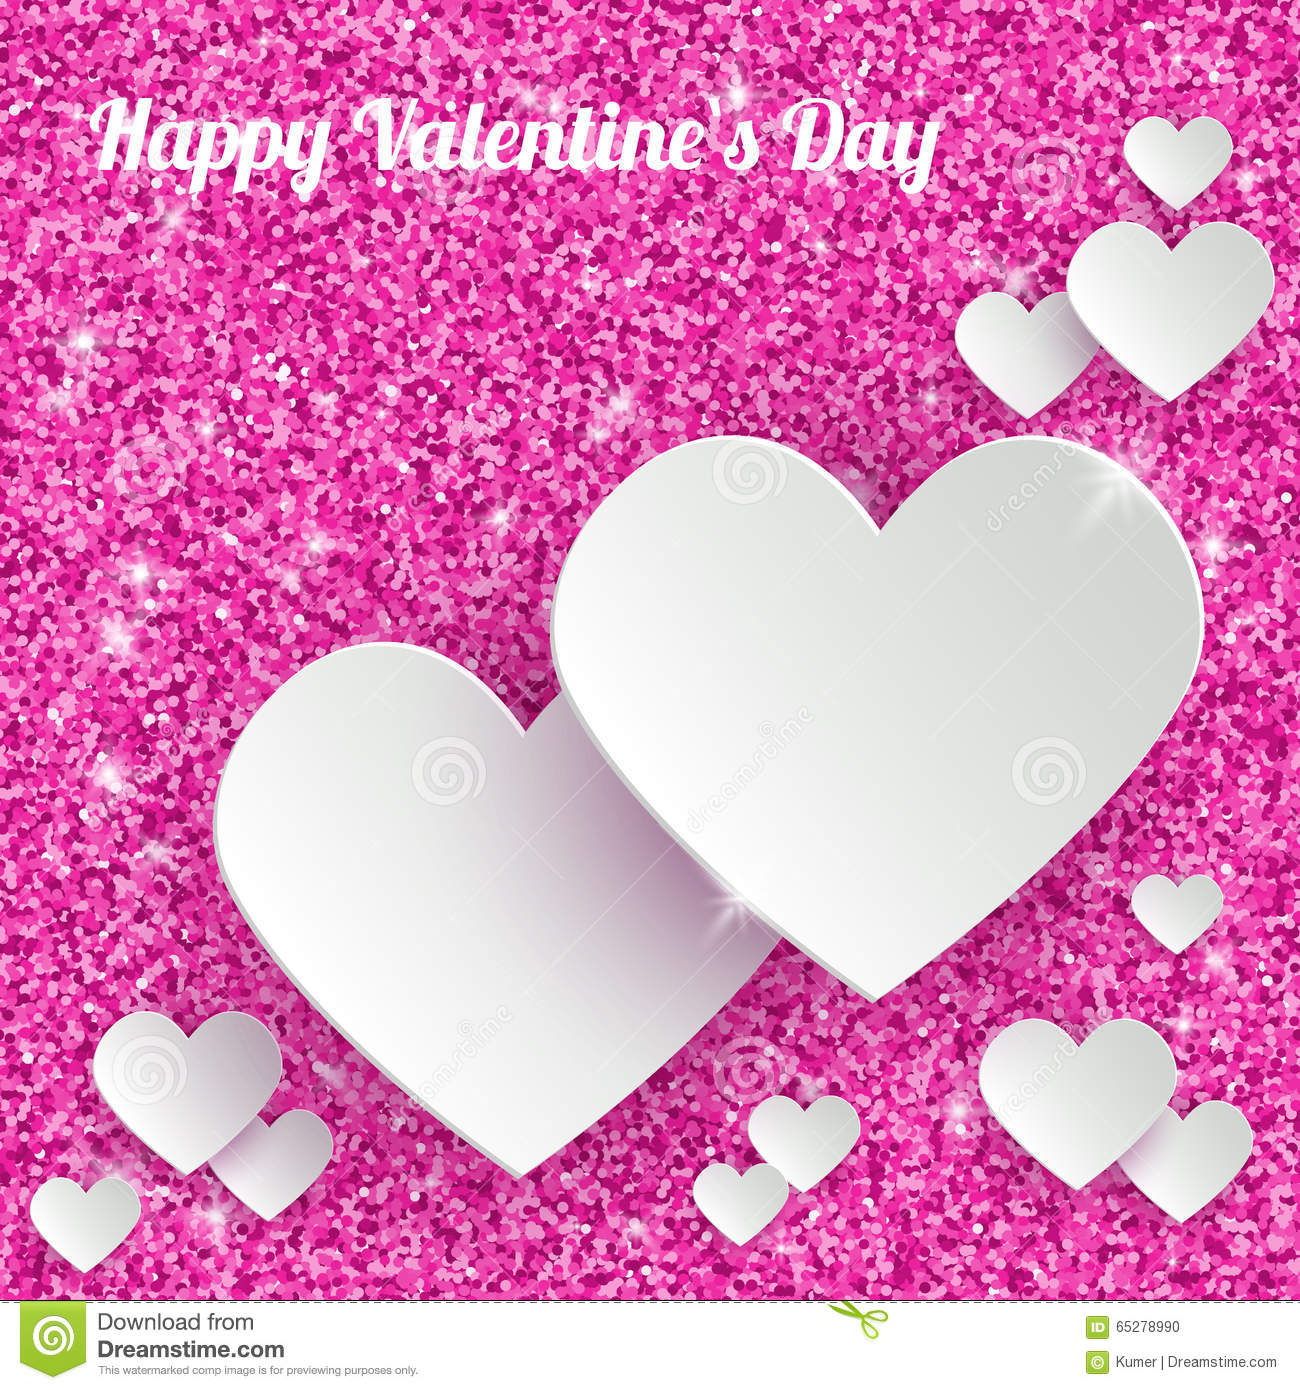 Happy valentines day greeting card with 3d white stock vector happy valentines day greeting card with 3d white kristyandbryce Image collections